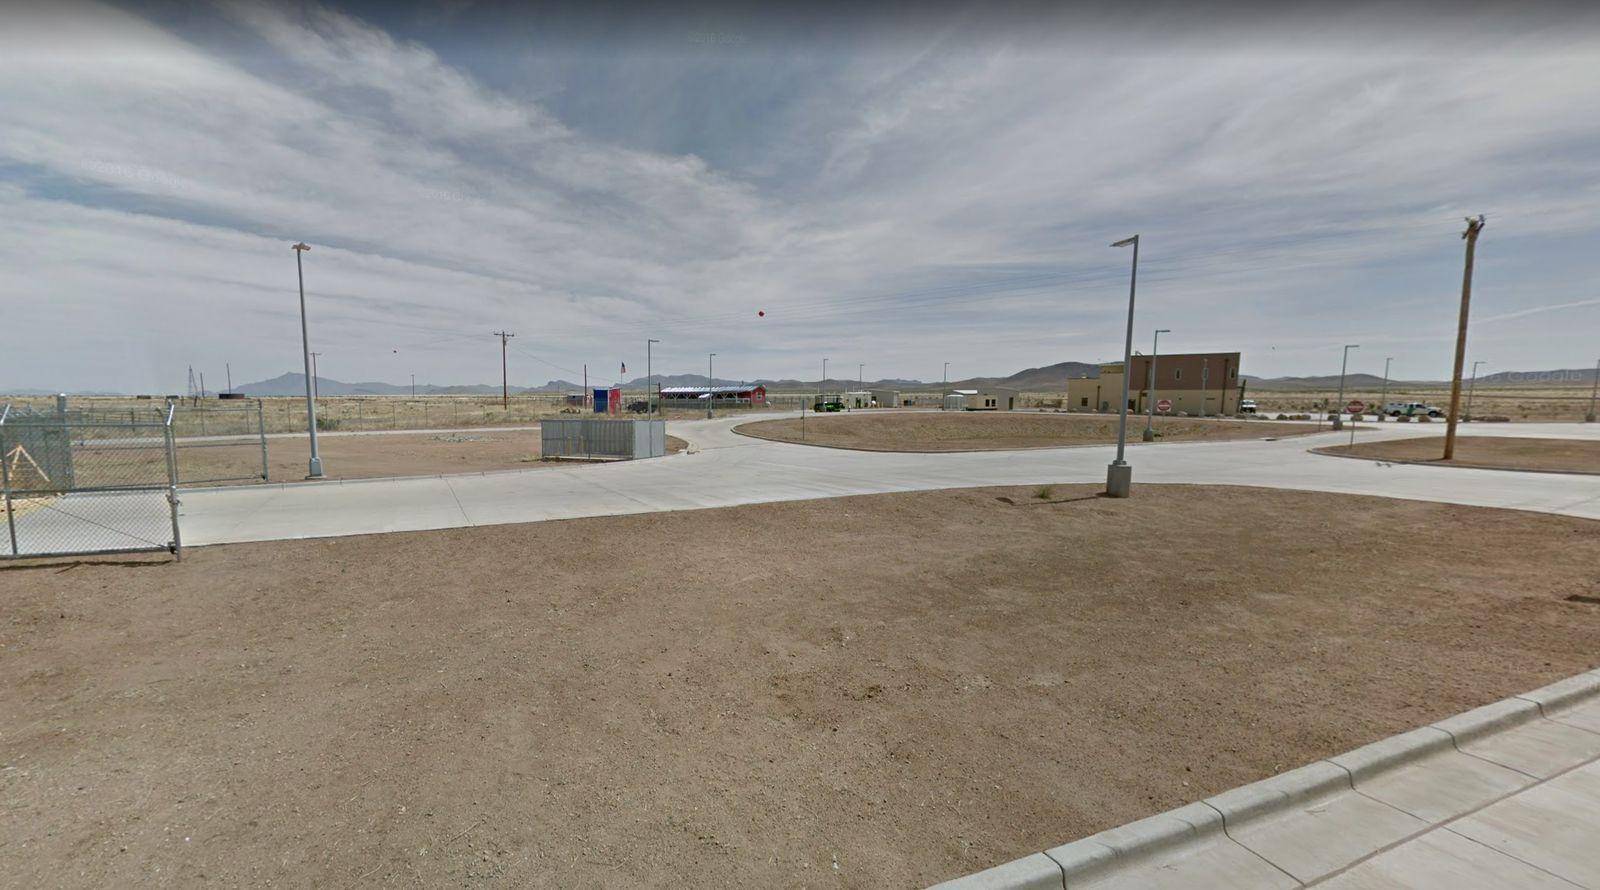 This photo shows the Antelope Wells port of entry in southwestern New Mexico. The facility reportedly has limited resources and scarce infrastructure. It is located approximately 95 miles south of the Lordsburg Border Patrol Station. (Credit: Google Maps)